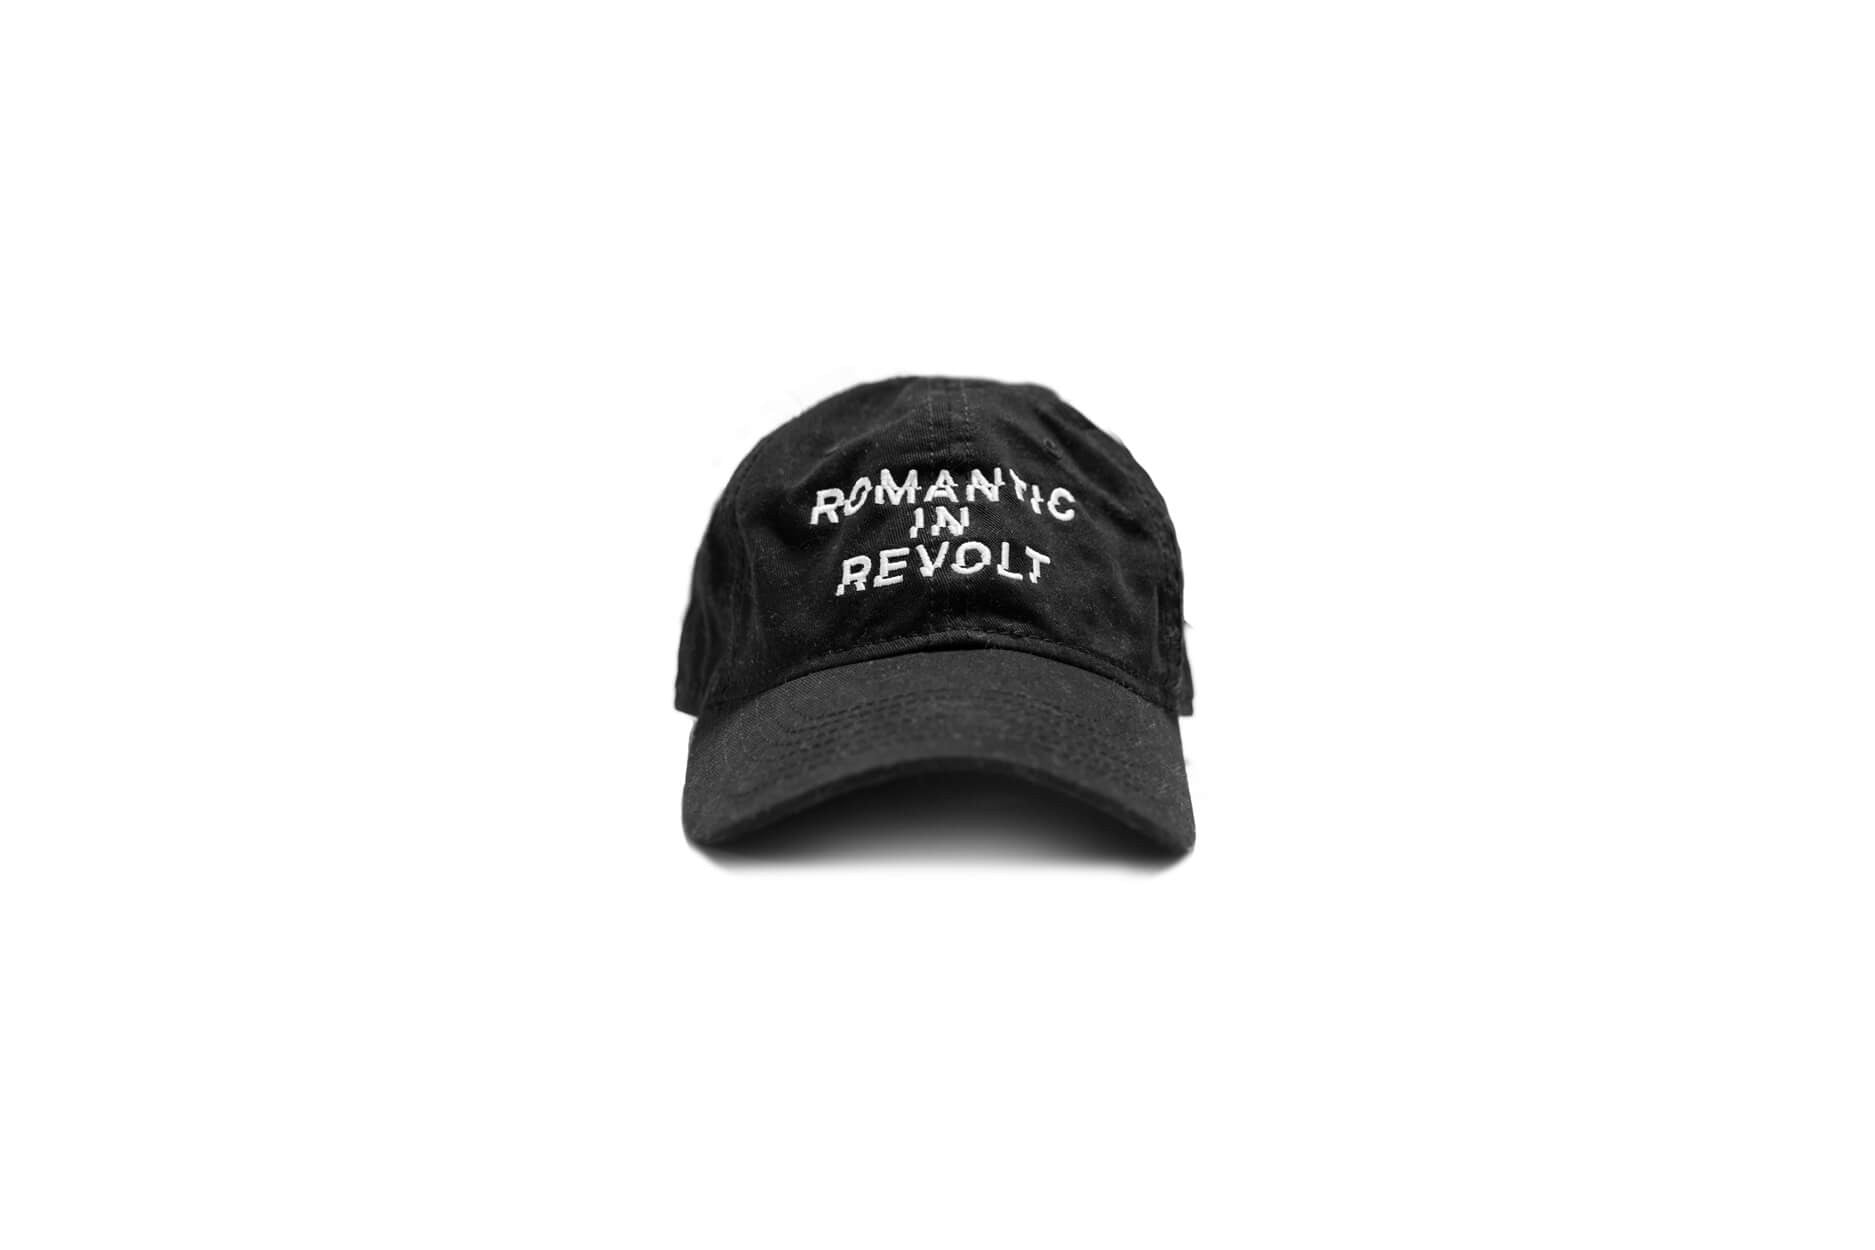 Romantic in Revolt Cap / Black